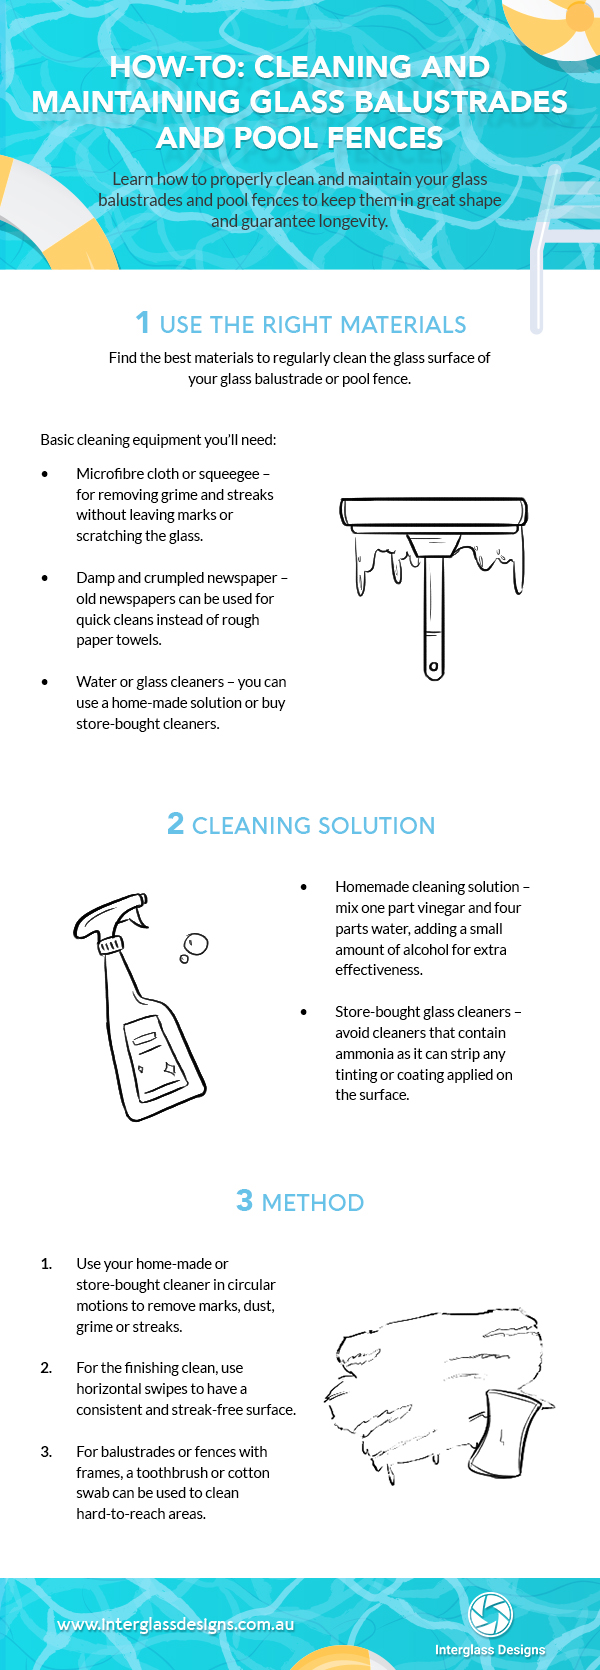 How to clean and maintain glass balustrade and pool fence infographic